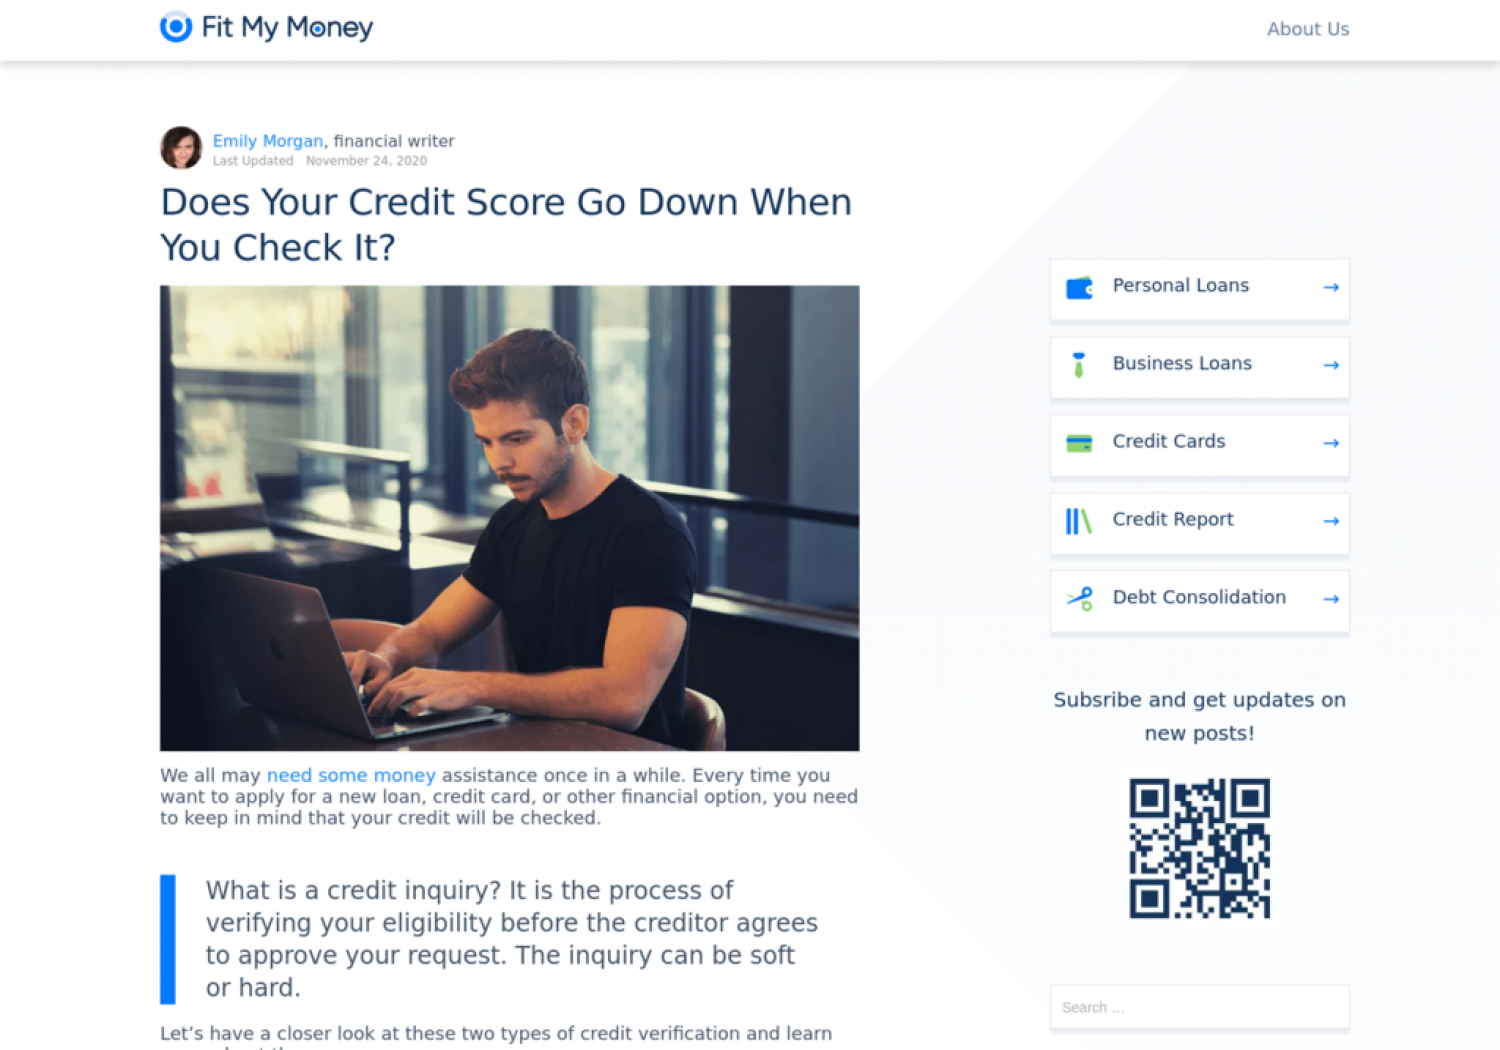 Does Your Credit Score Go Down When You Check It? Infographic